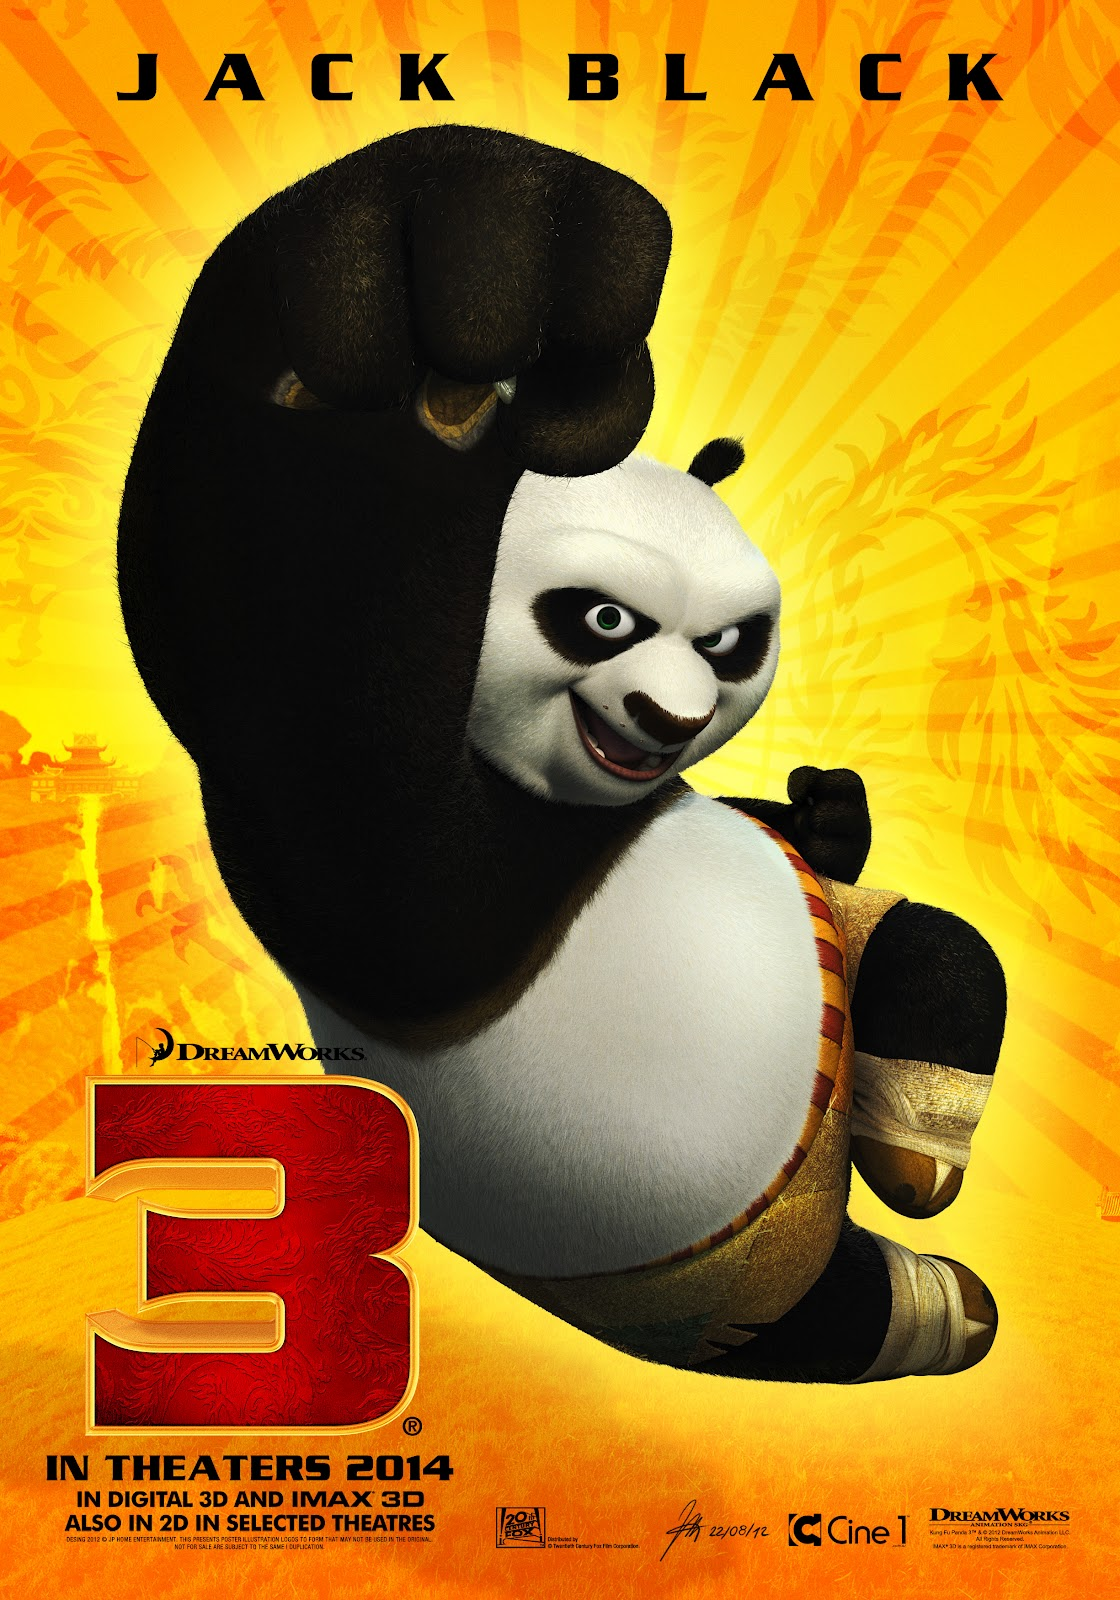 Box Office Wrap Up: Kung Fu Panda 3 Chopping The Competition